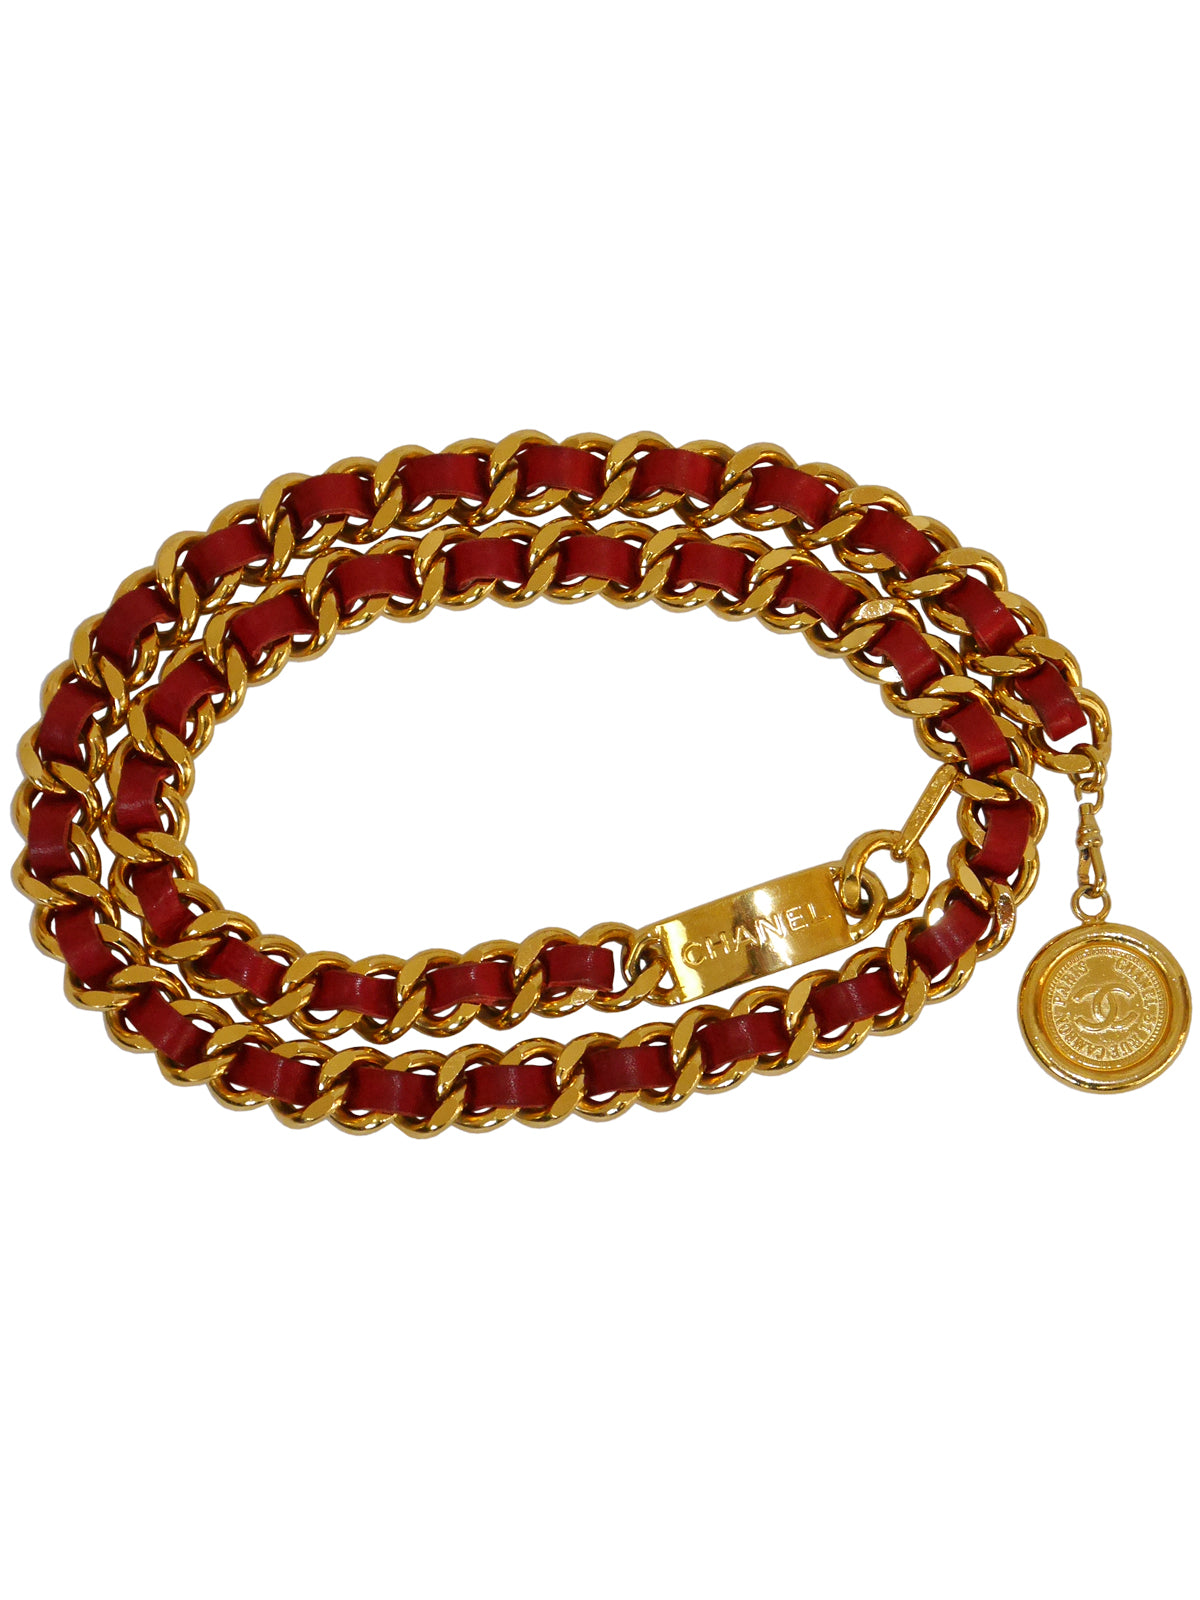 Sold - CHANEL Vintage Signature Chain Belt Gold Red Size S-M-L